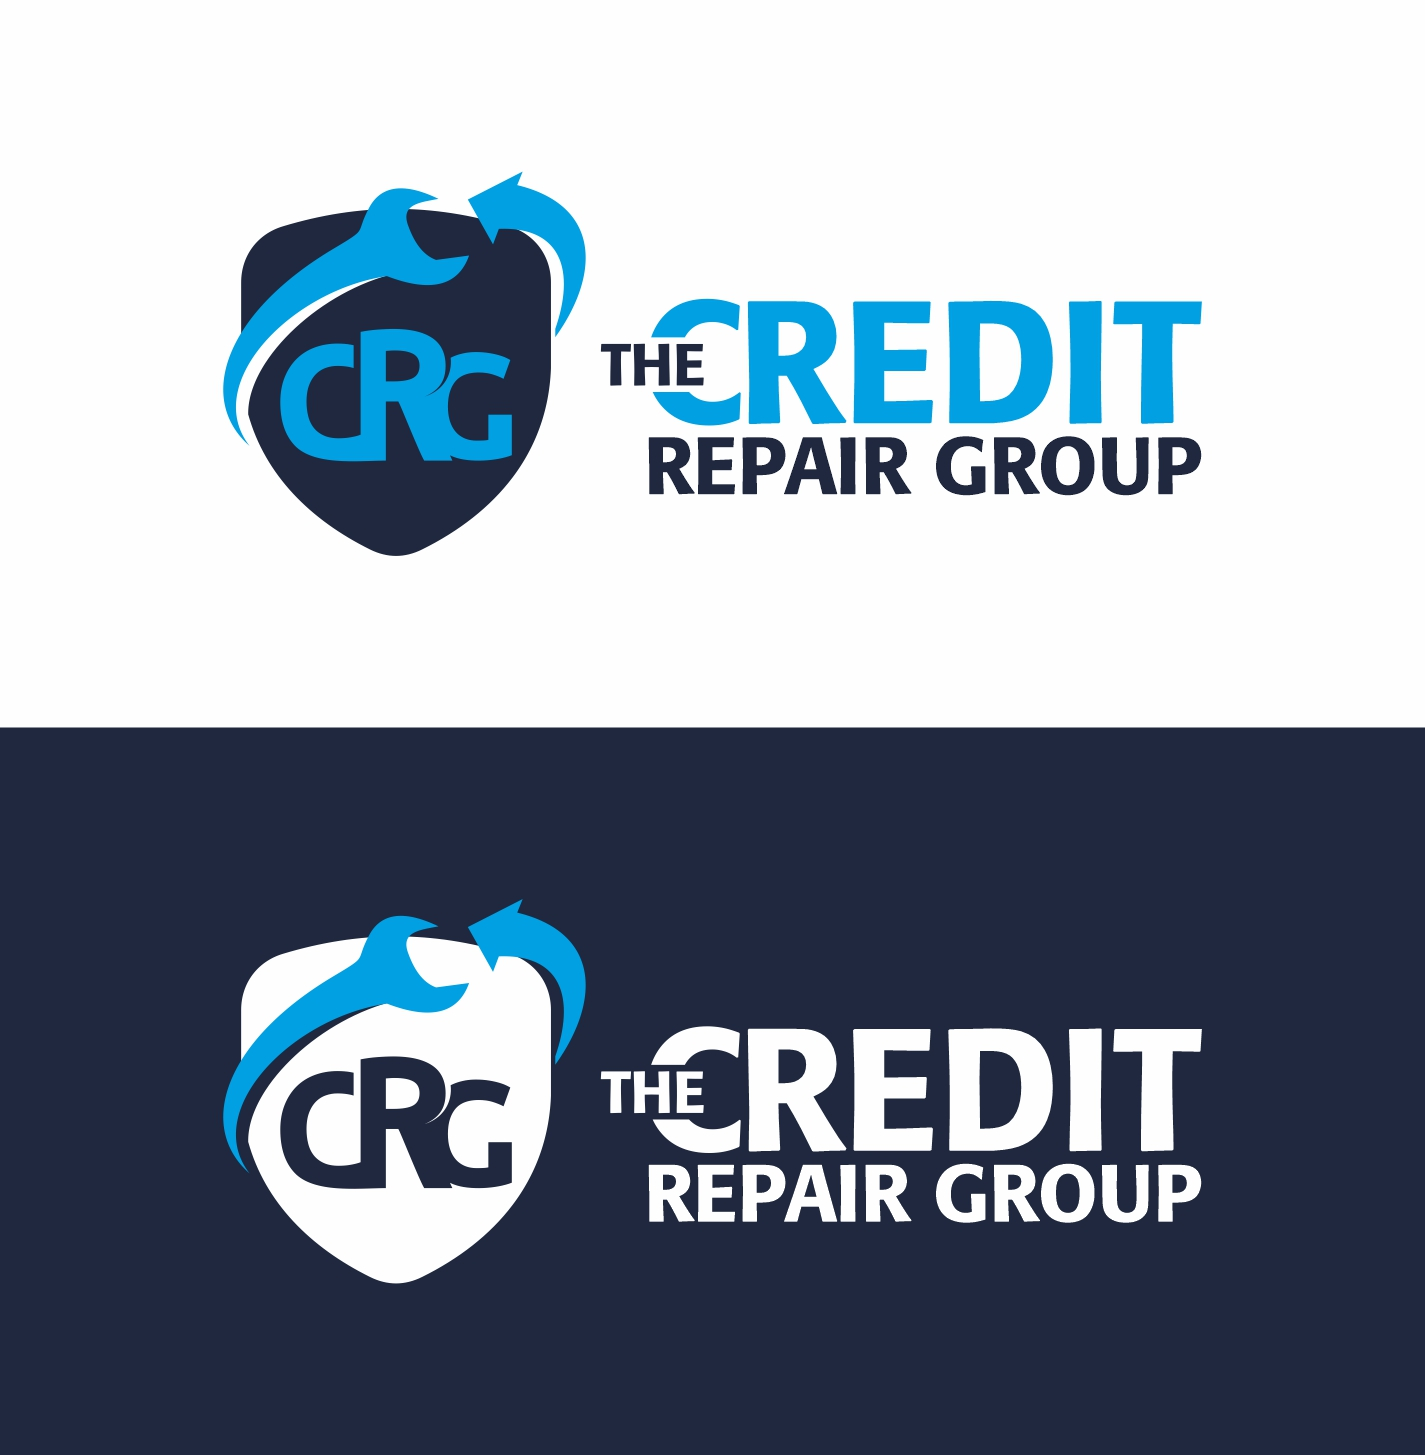 Modern Professional Logo Design For The Credit Repair Group By Pranav Creative Graphic Design 22362385